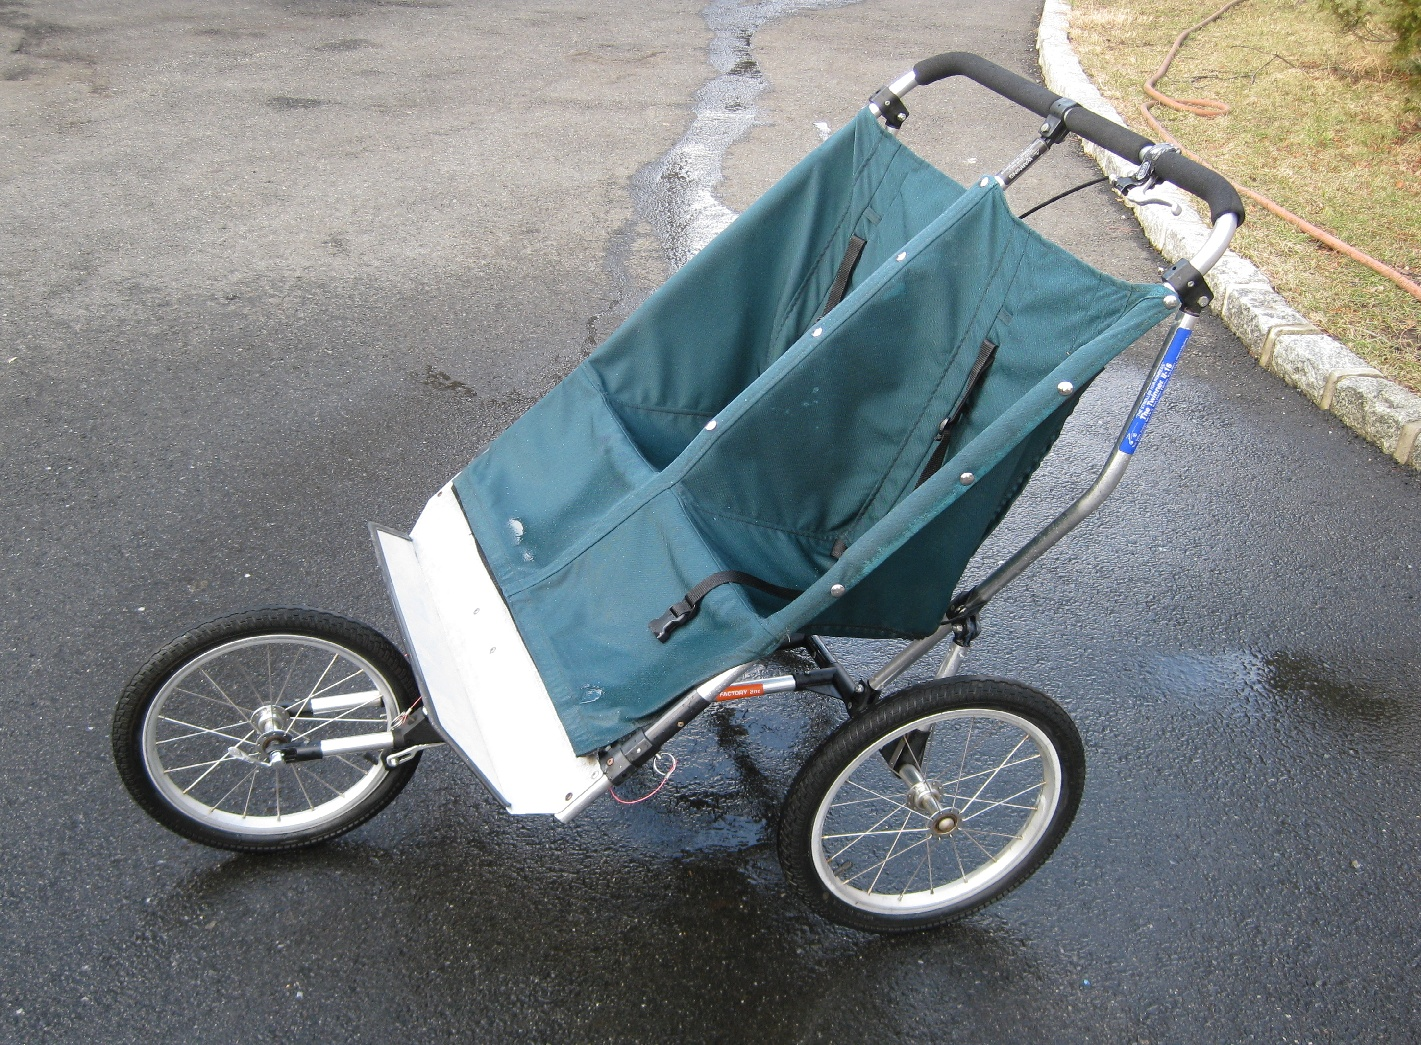 Sparkling A Tall Year Question Which Jogging Stroller Jogger Like This A Year Schwinn Jogging Stroller Replacement Straps Schwinn Jogging Stroller Blue baby Schwinn Jogging Stroller